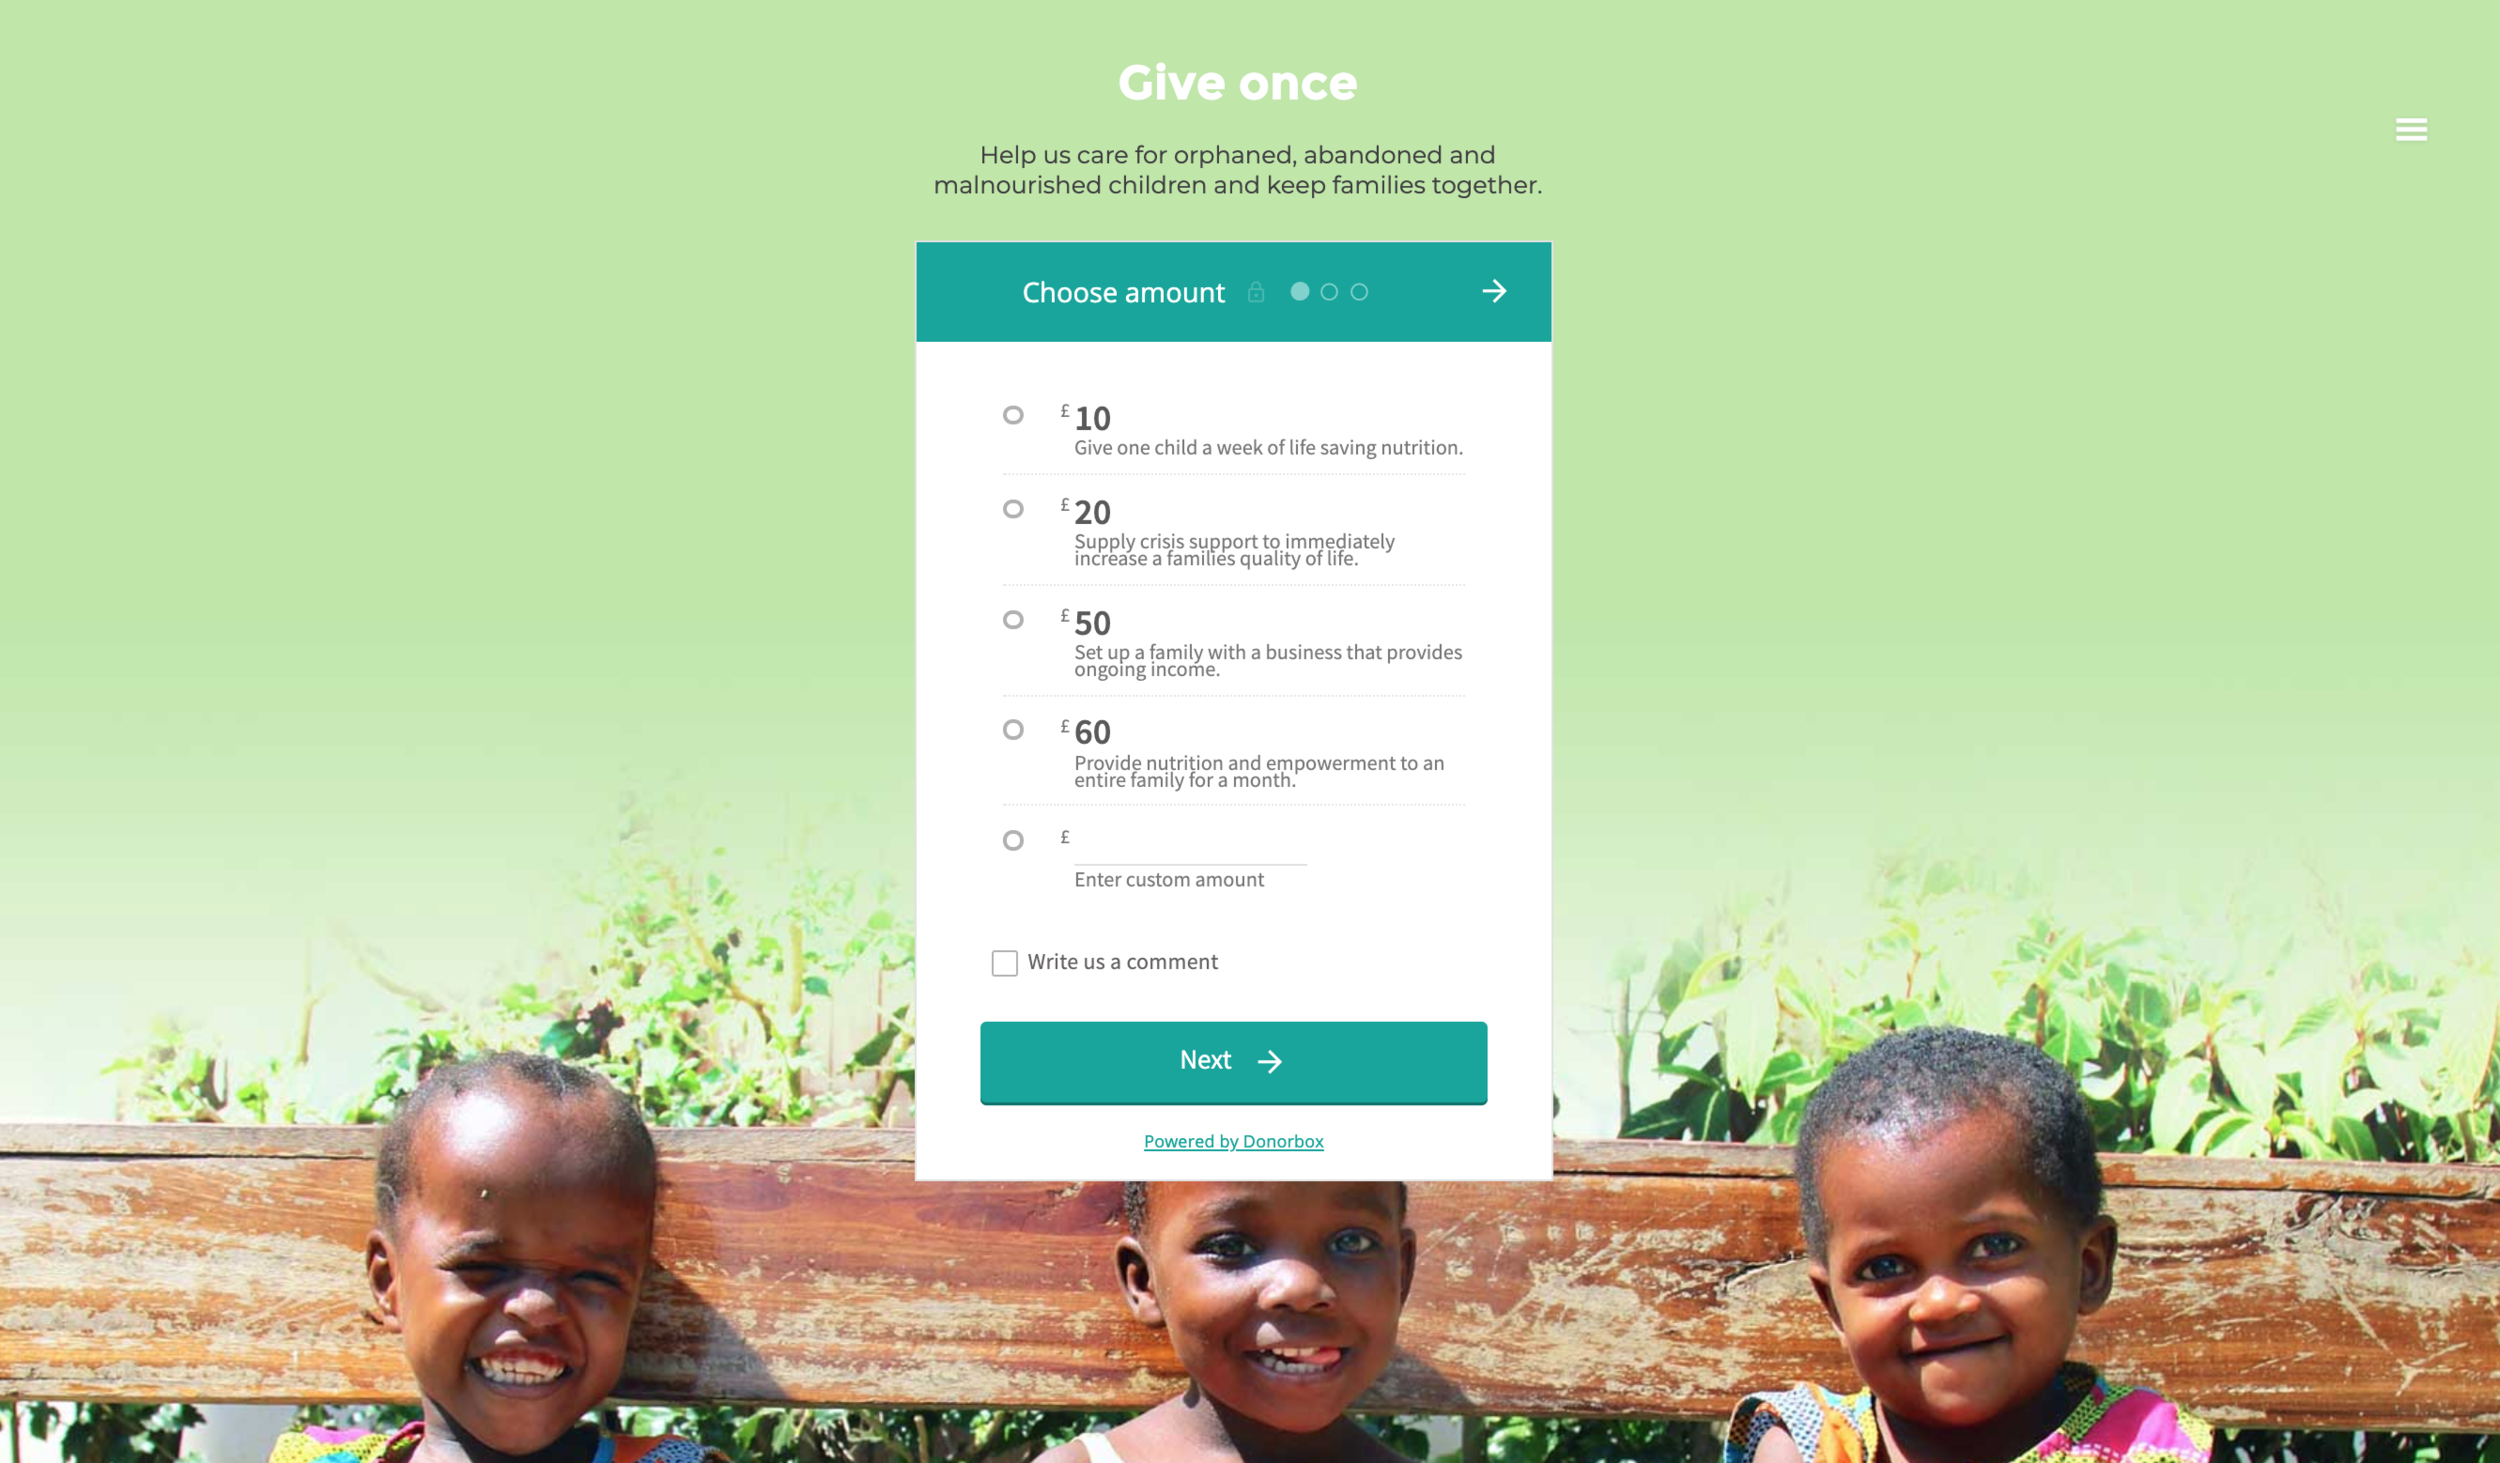 example of website using donorbox